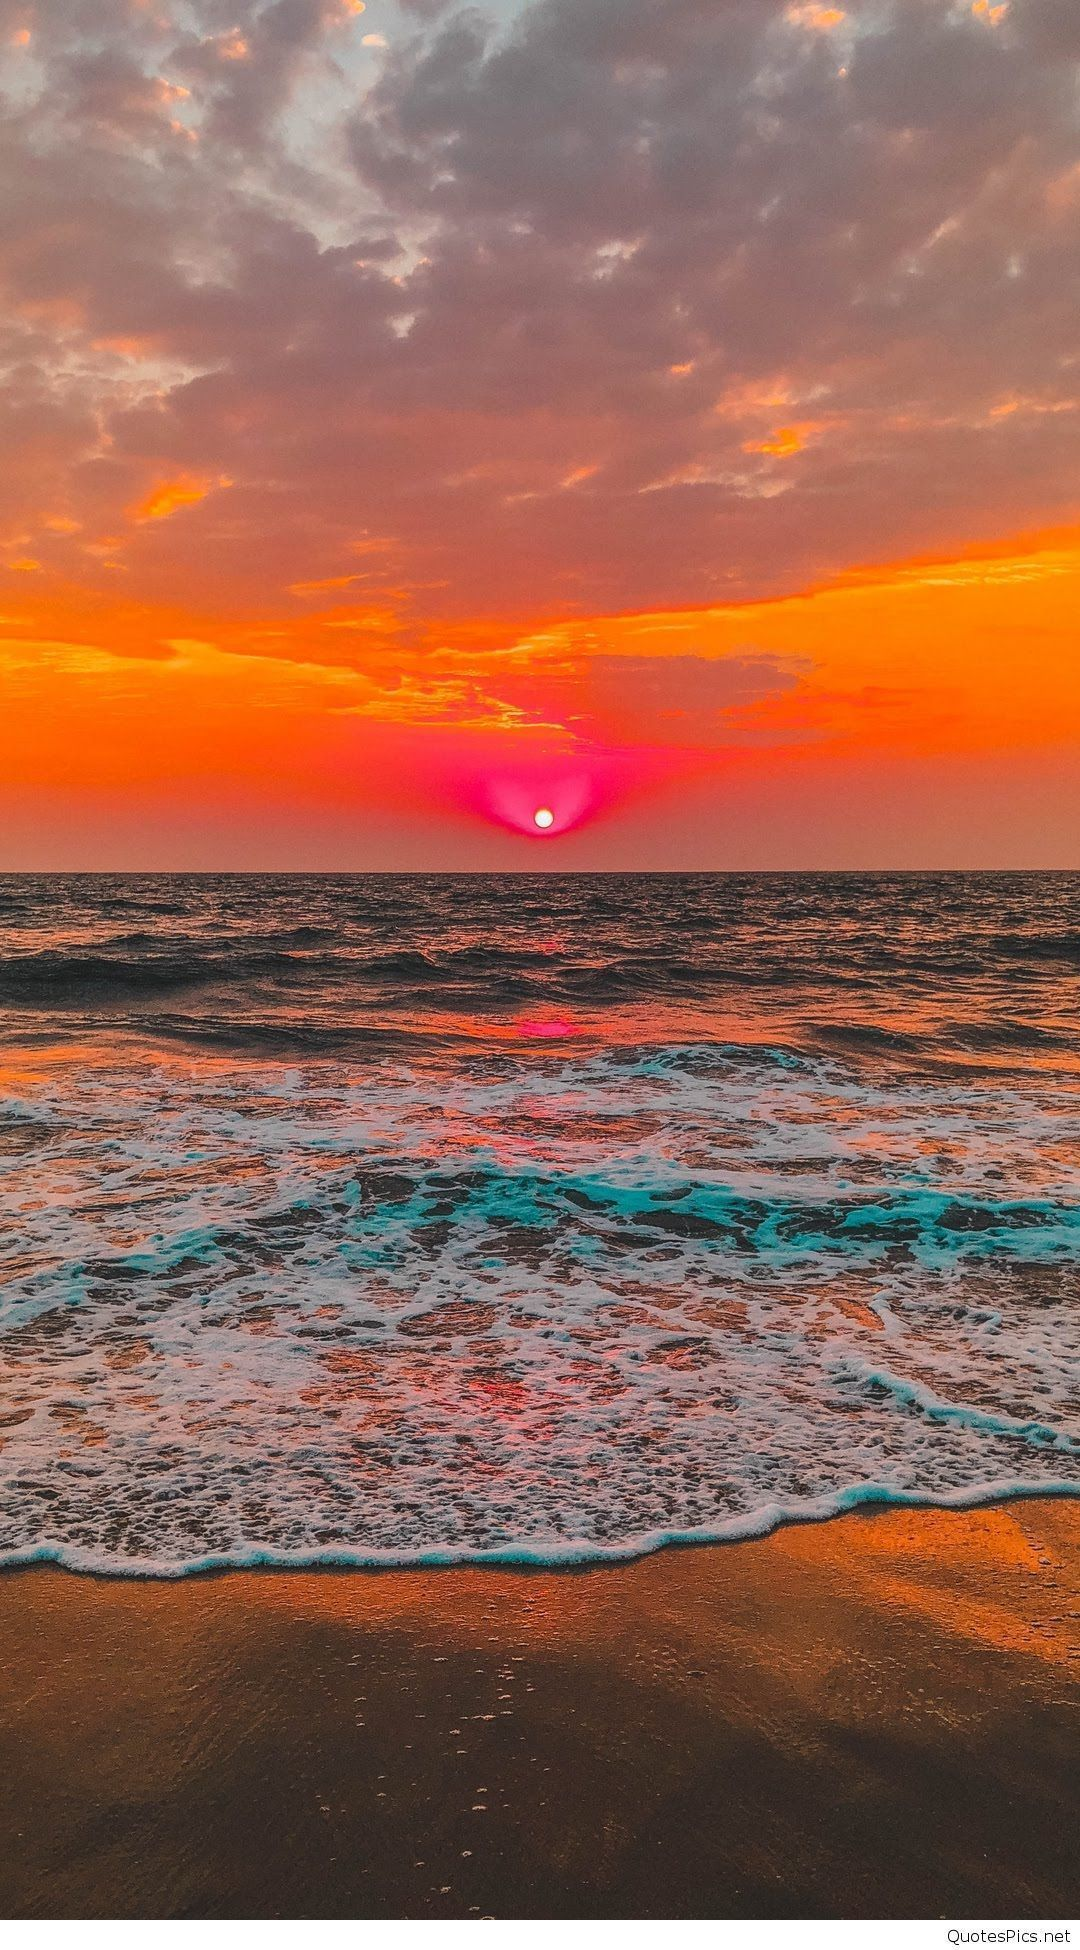 Awesome Mobile Nature Sunset Wallpaper Hd Images In 2020 Sunset Wallpaper Sunset Iphone Wallpaper Beach Sunset Wallpaper